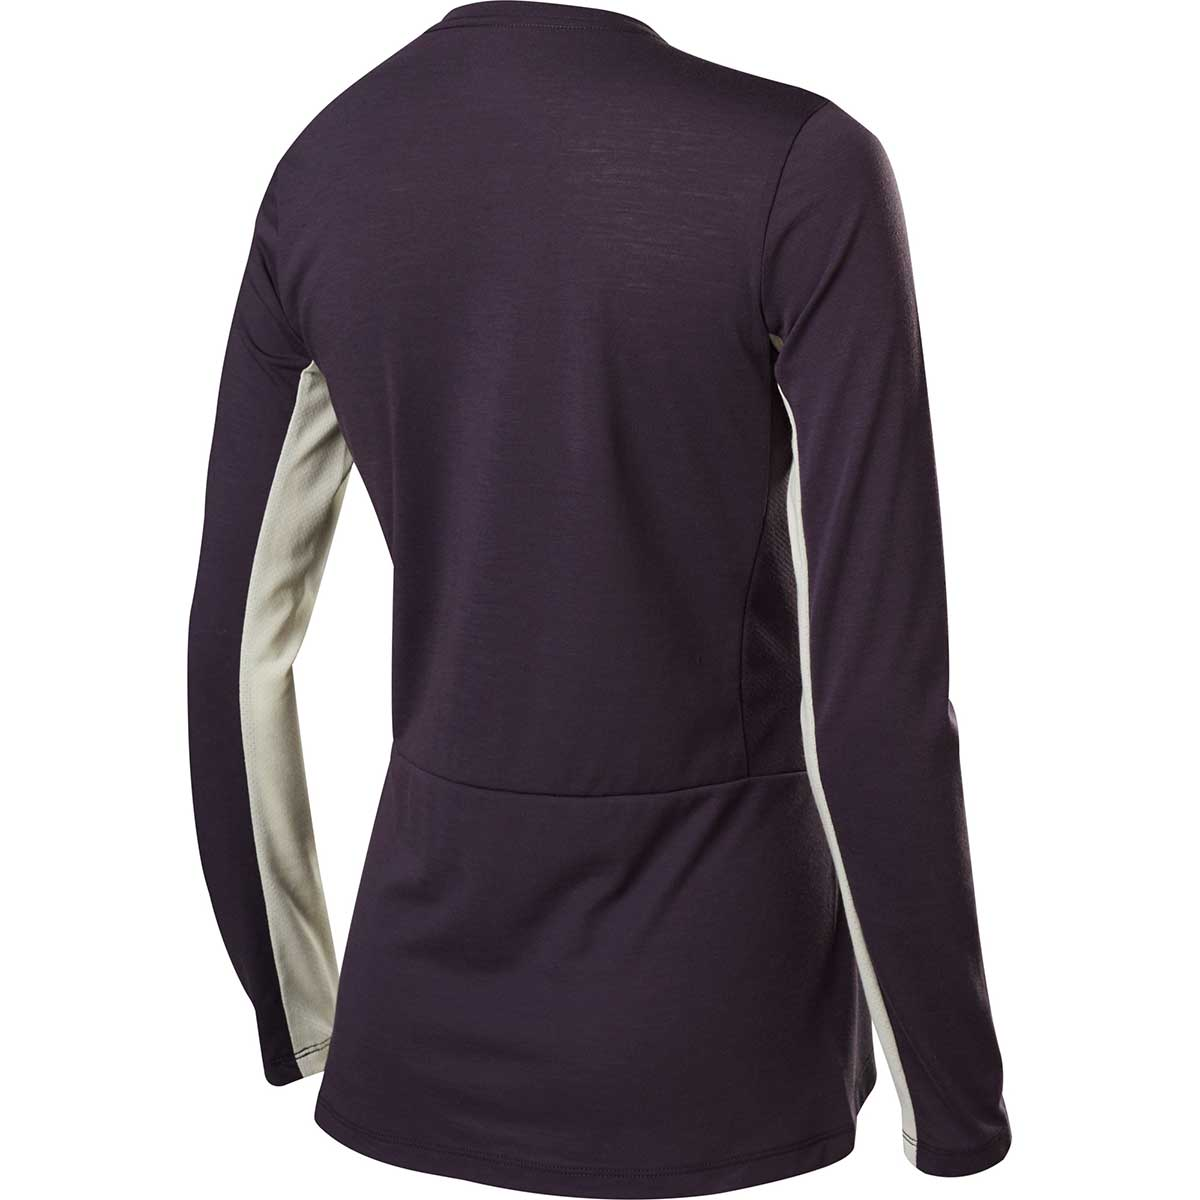 Fox women's Ranger Dri-Release Long Sleeve jersey in Dark Purple